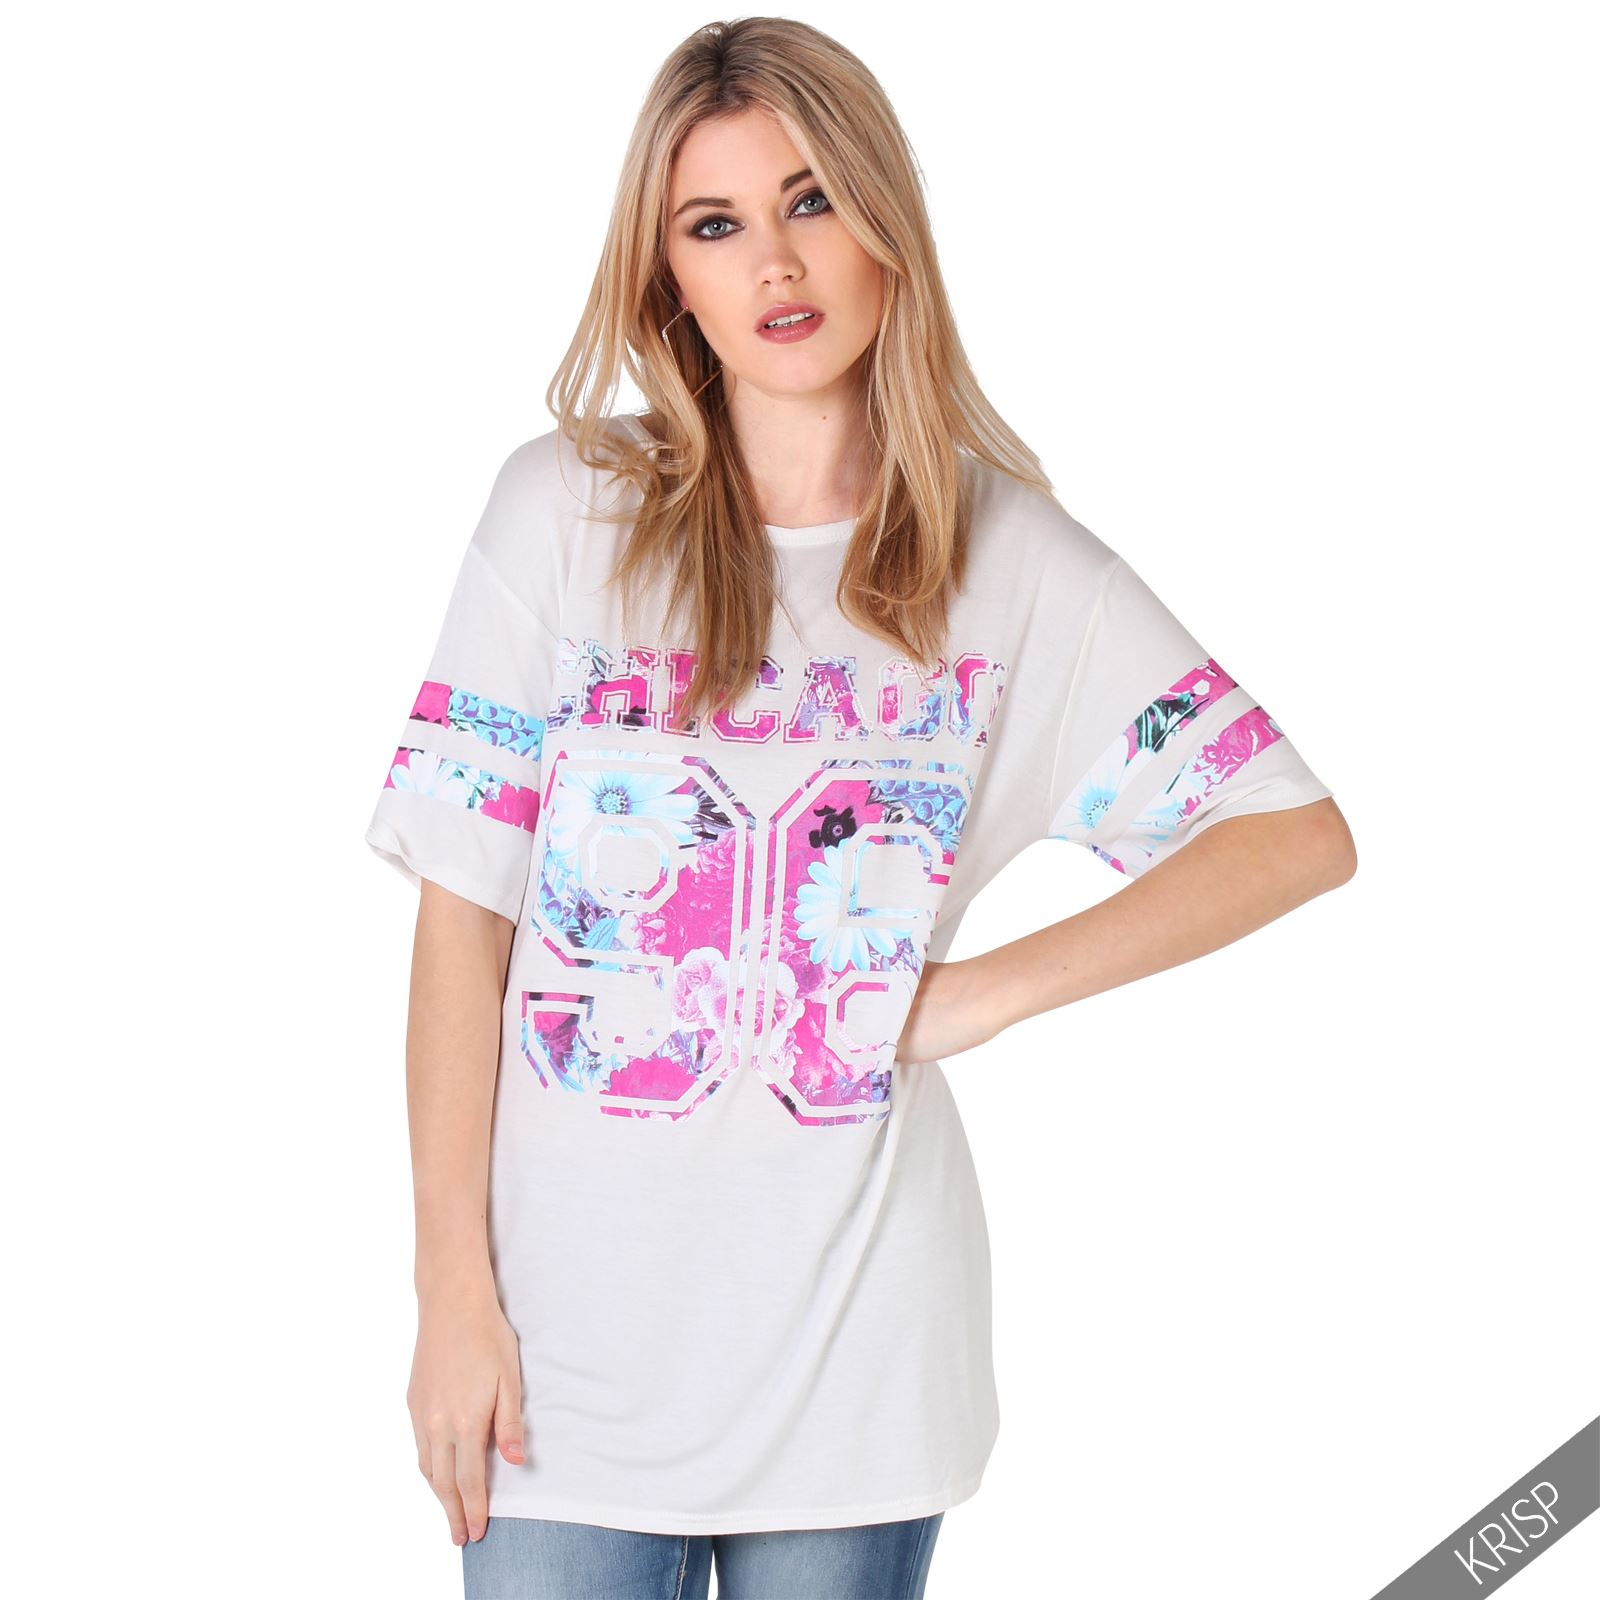 au womens oversized tee shirt american varsity print baseball long jersey top ebay. Black Bedroom Furniture Sets. Home Design Ideas